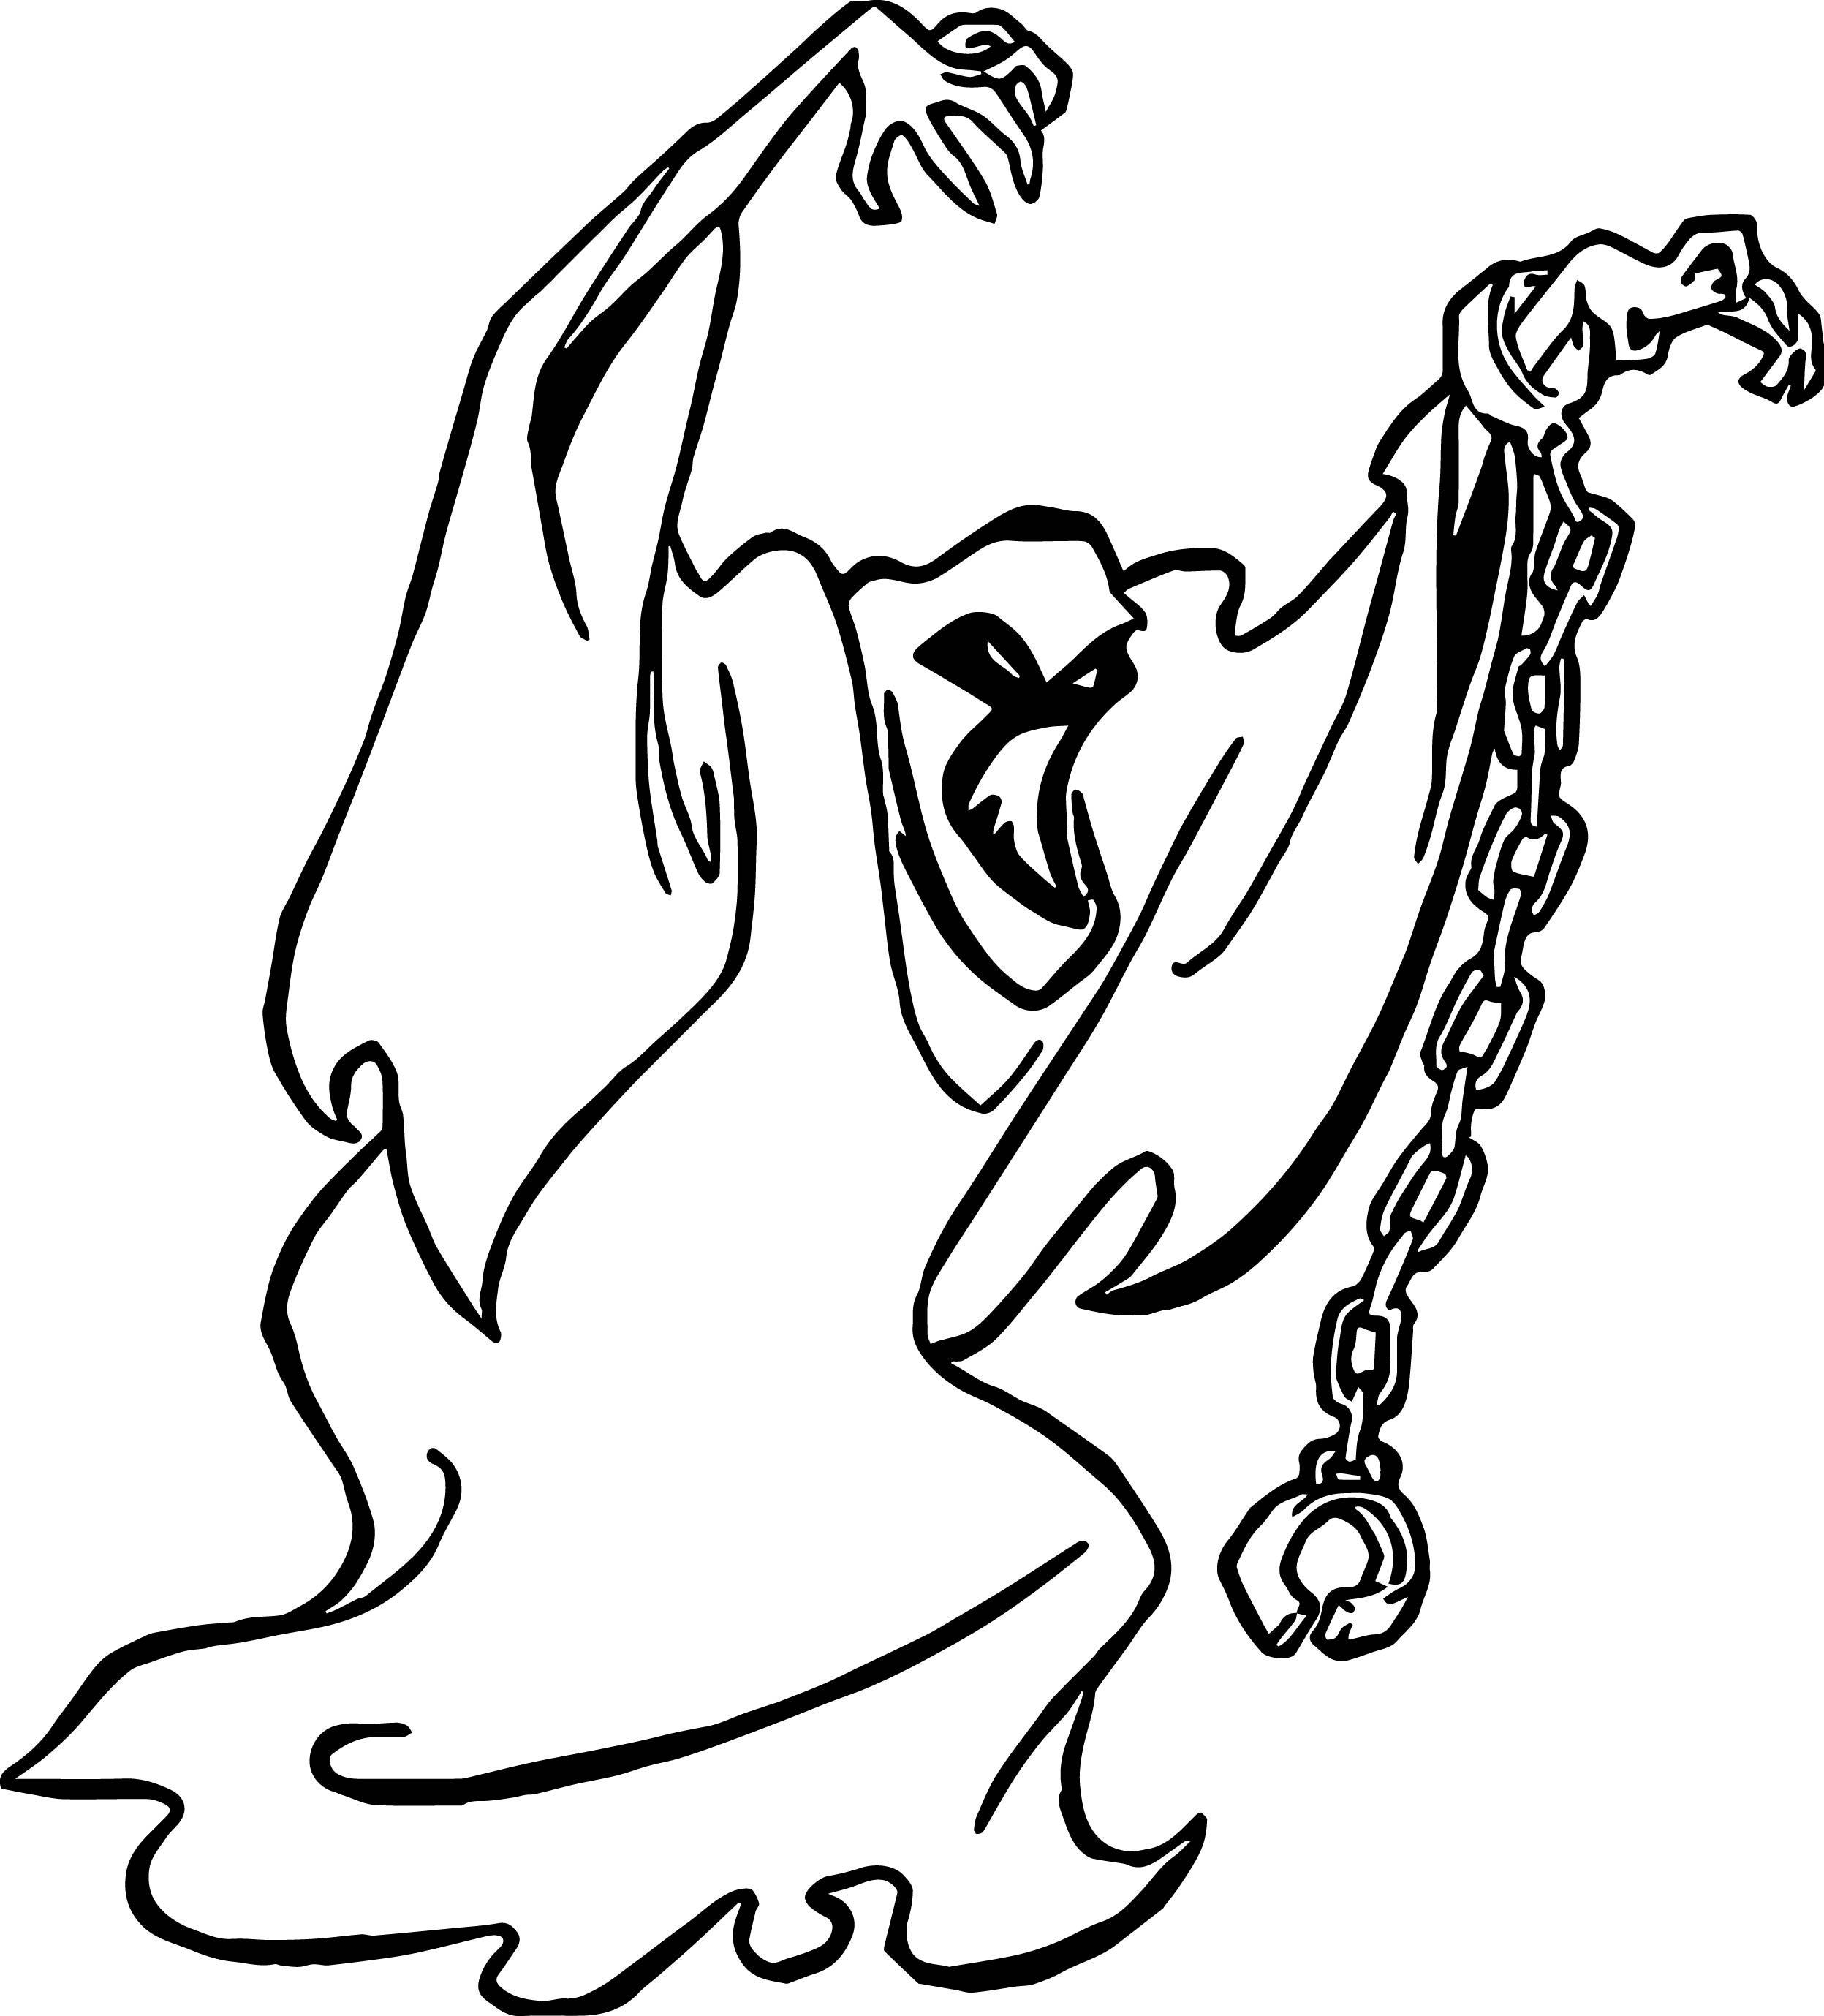 Scooby Doo Monster Coloring Pages At Getdrawings